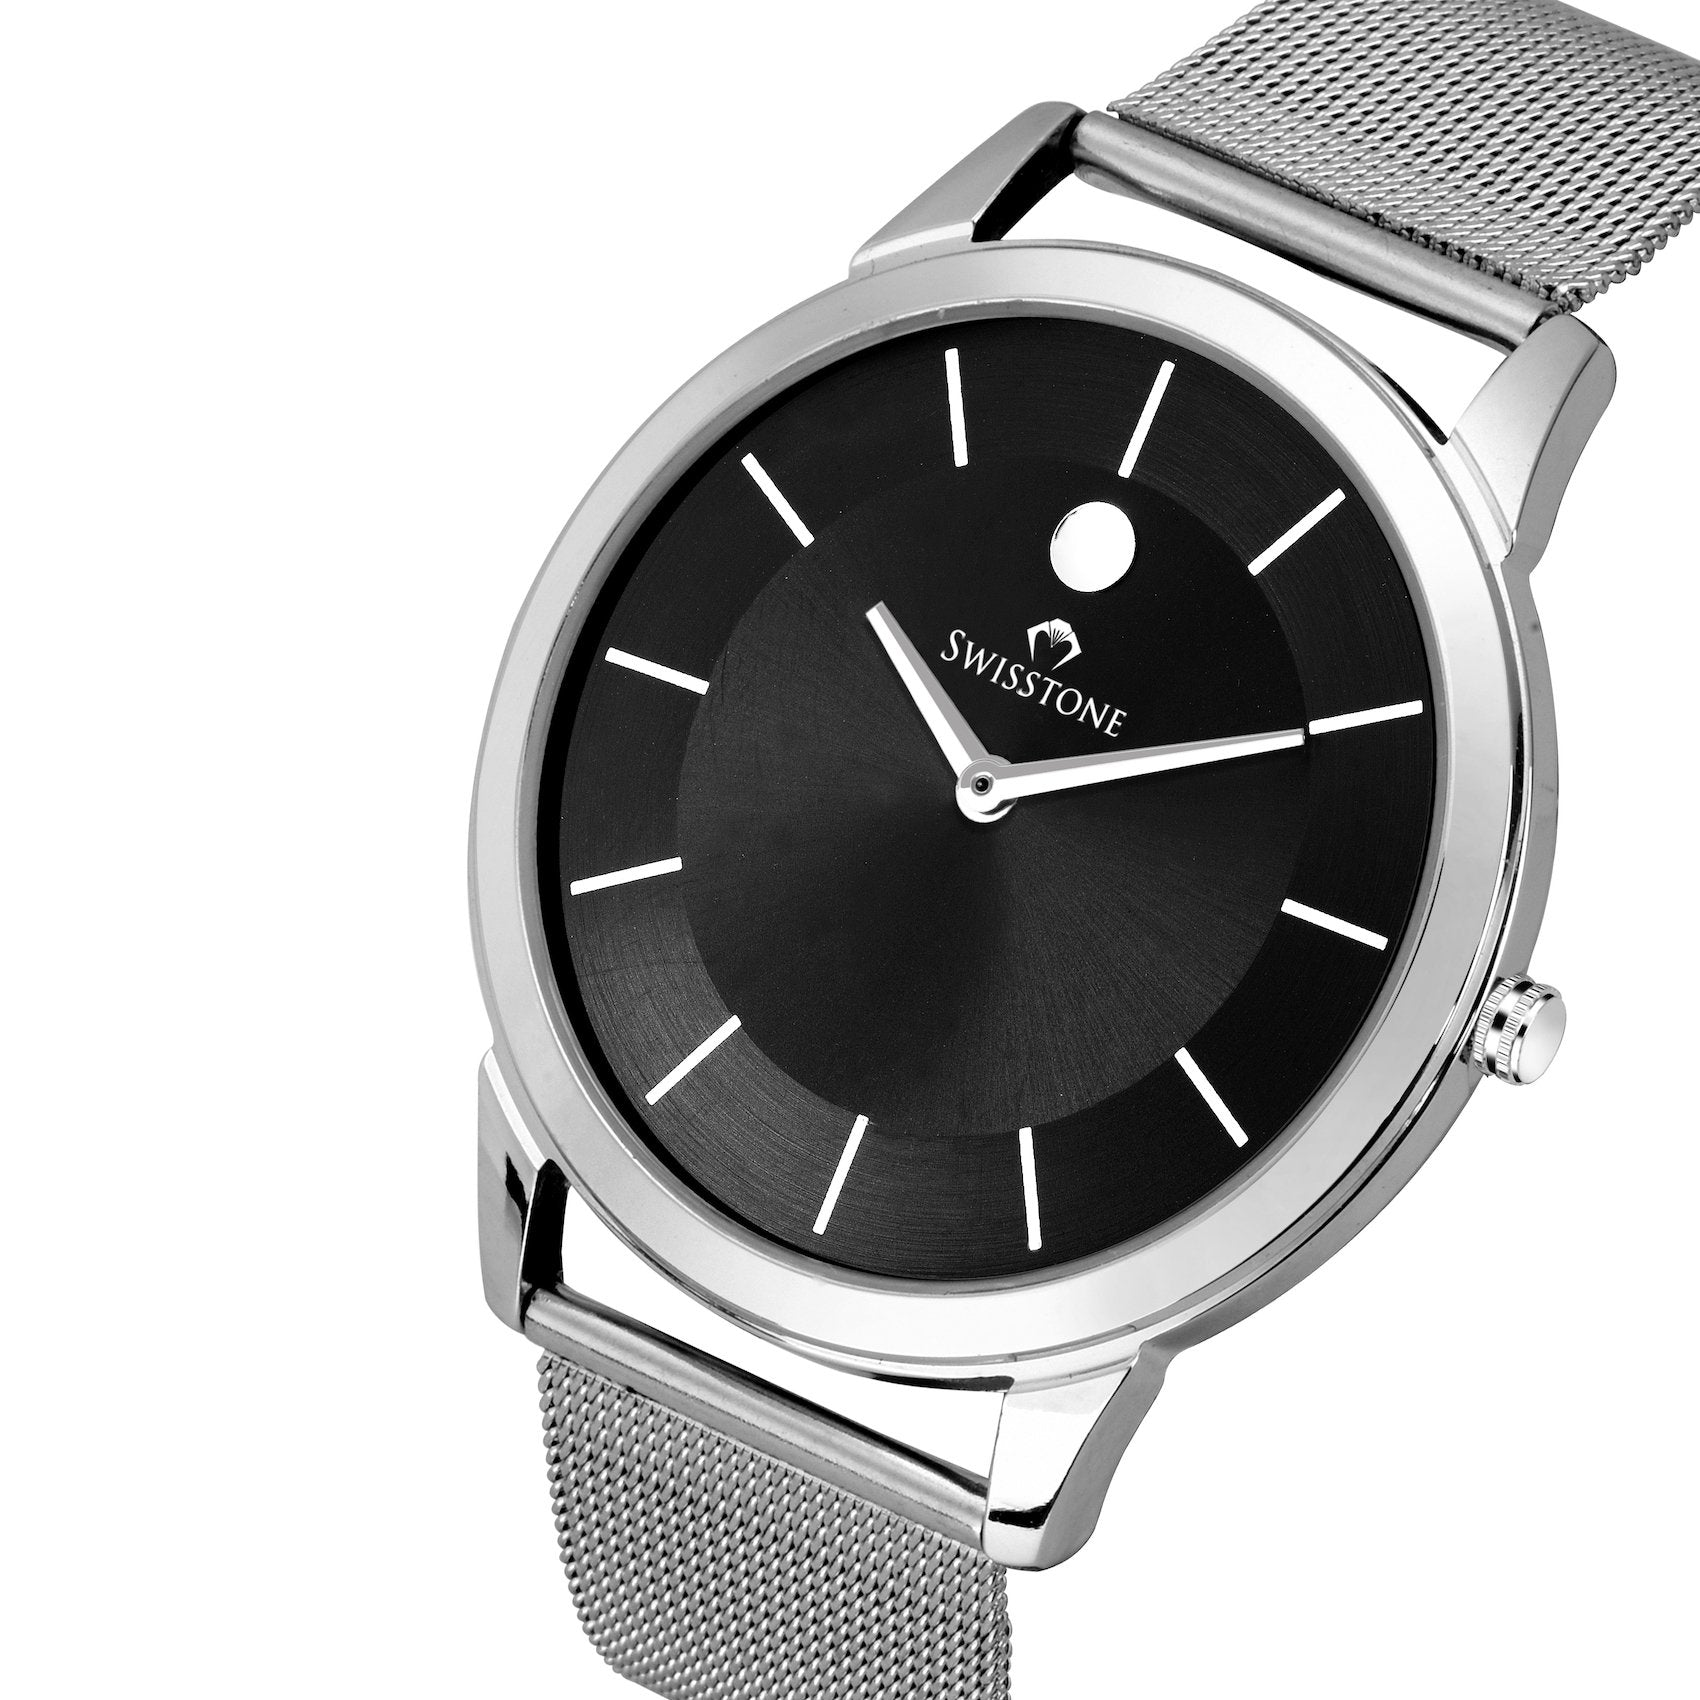 Swisstone SLIM193-BLK-CH Slim Wrist Watch for Men